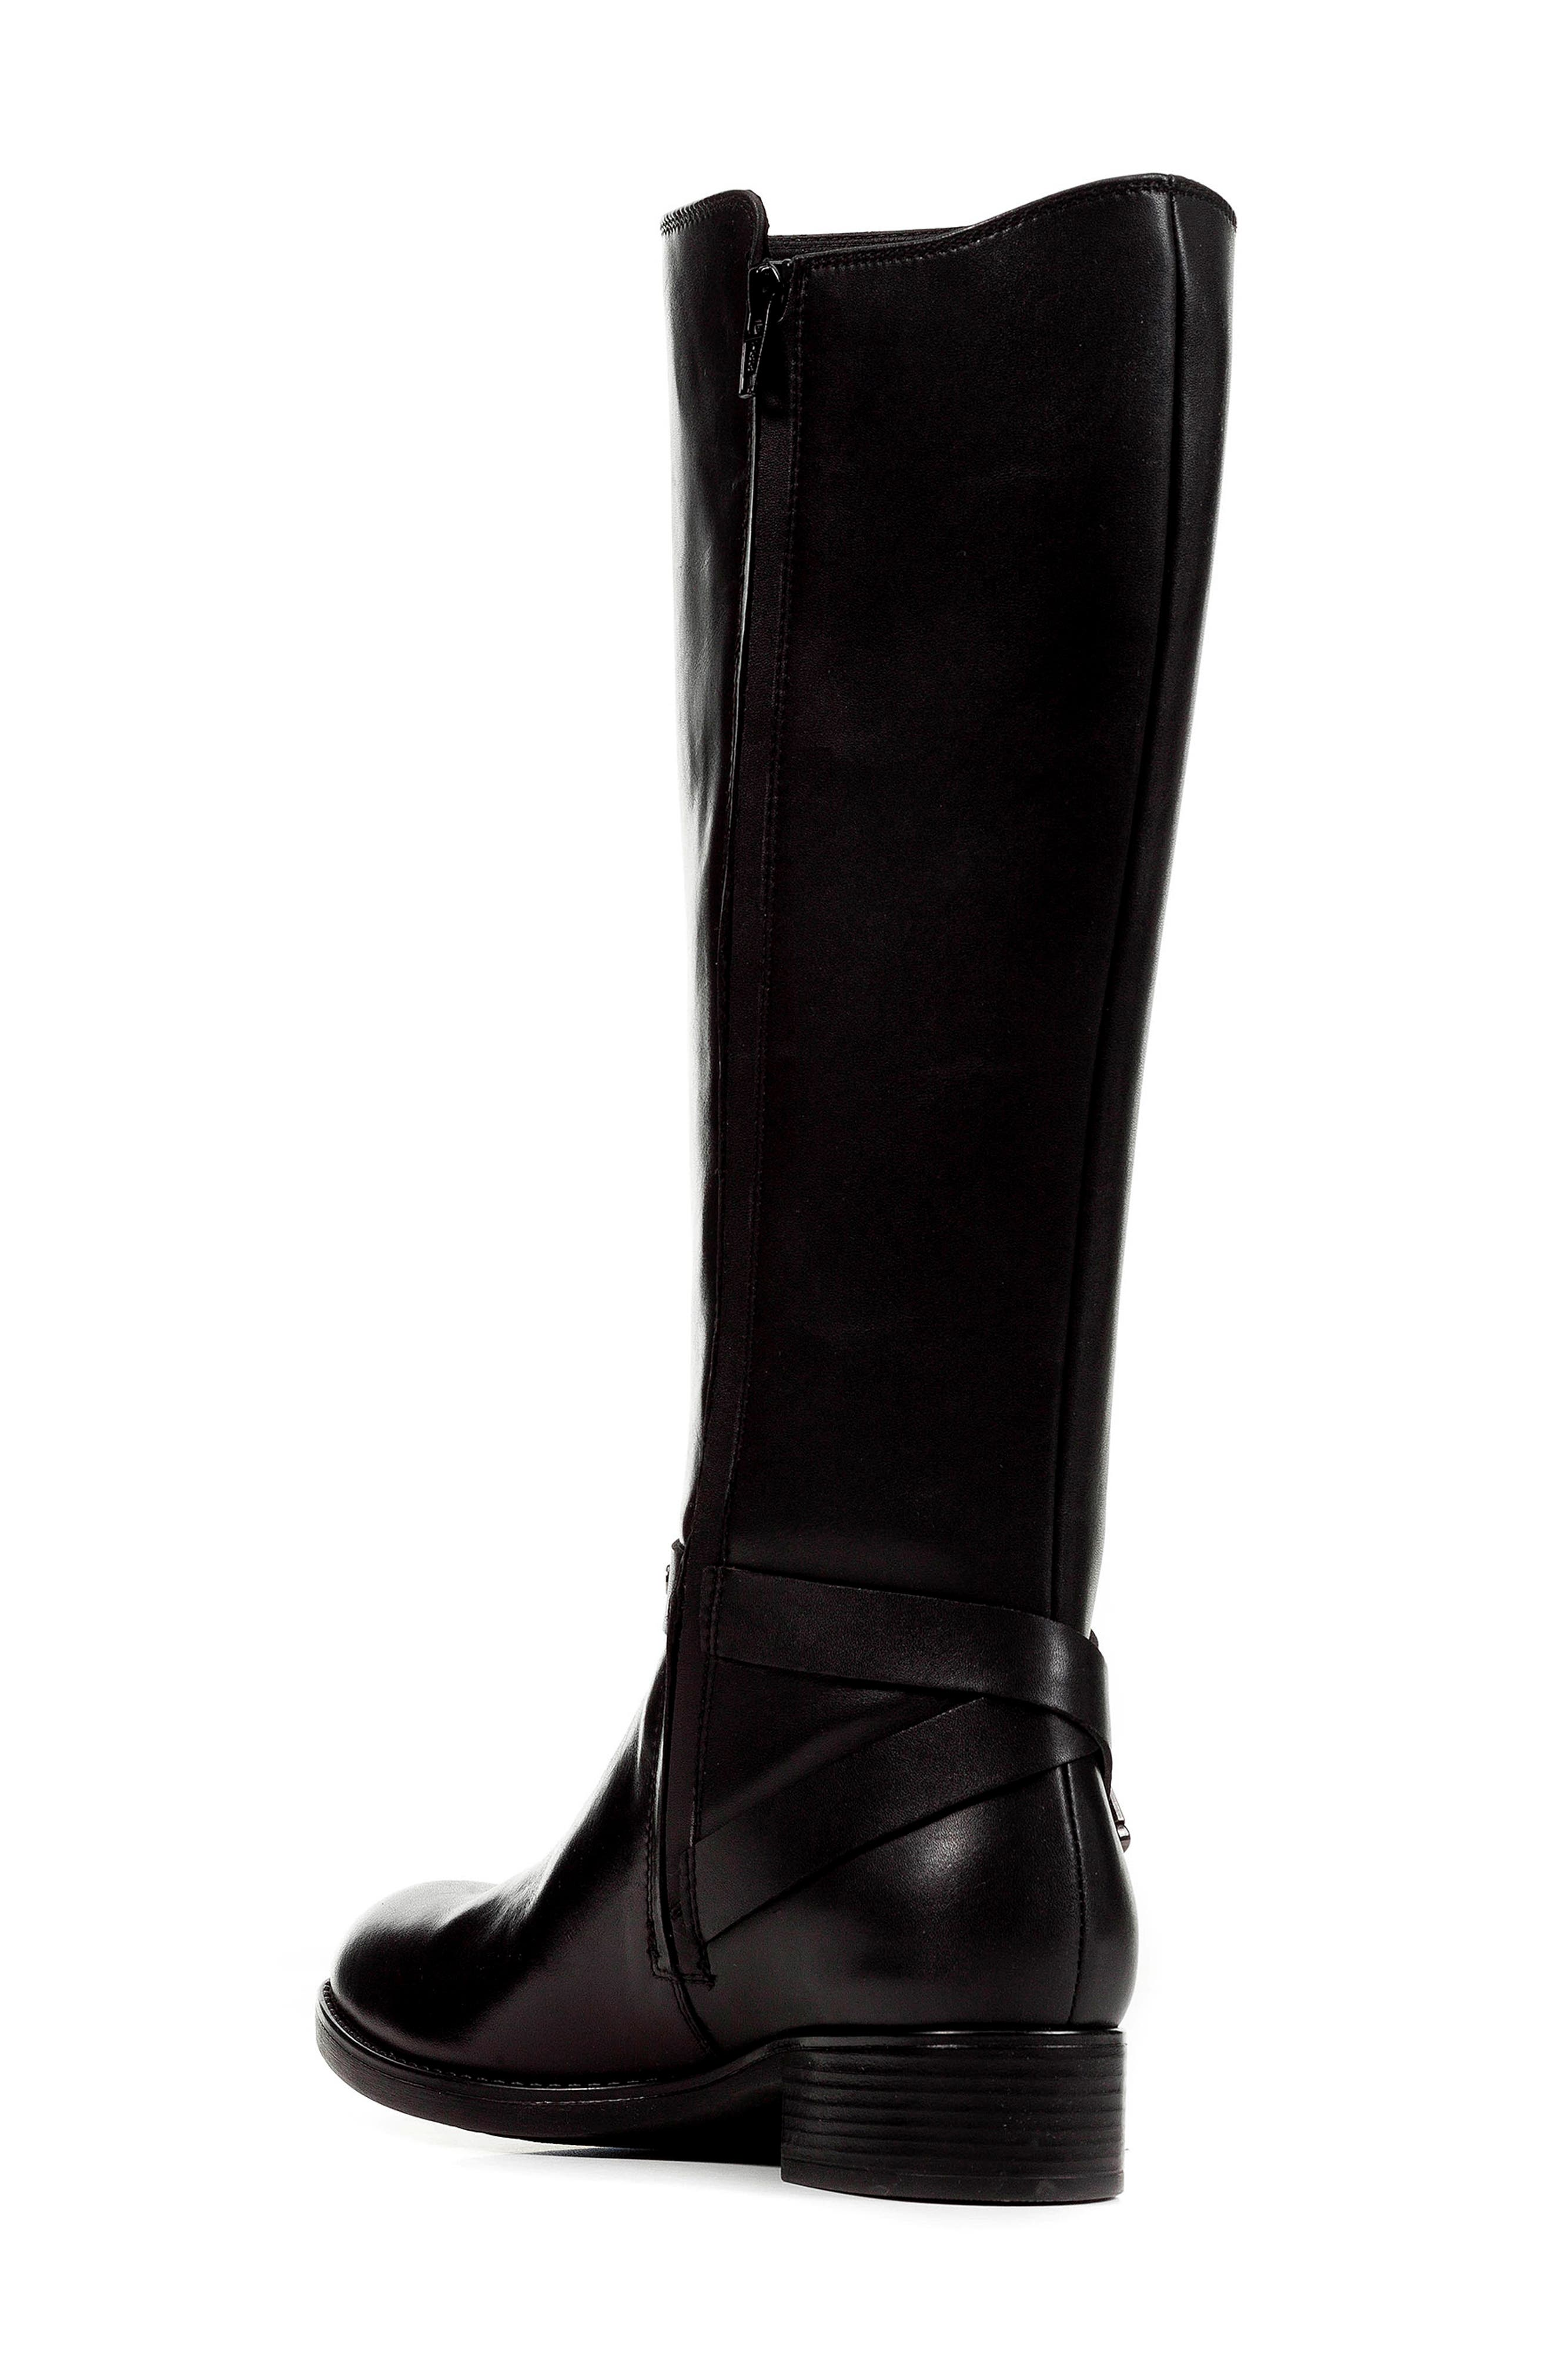 Felicity ABX Waterproof Knee High Riding Boot,                             Alternate thumbnail 2, color,                             BLACK LEATHER